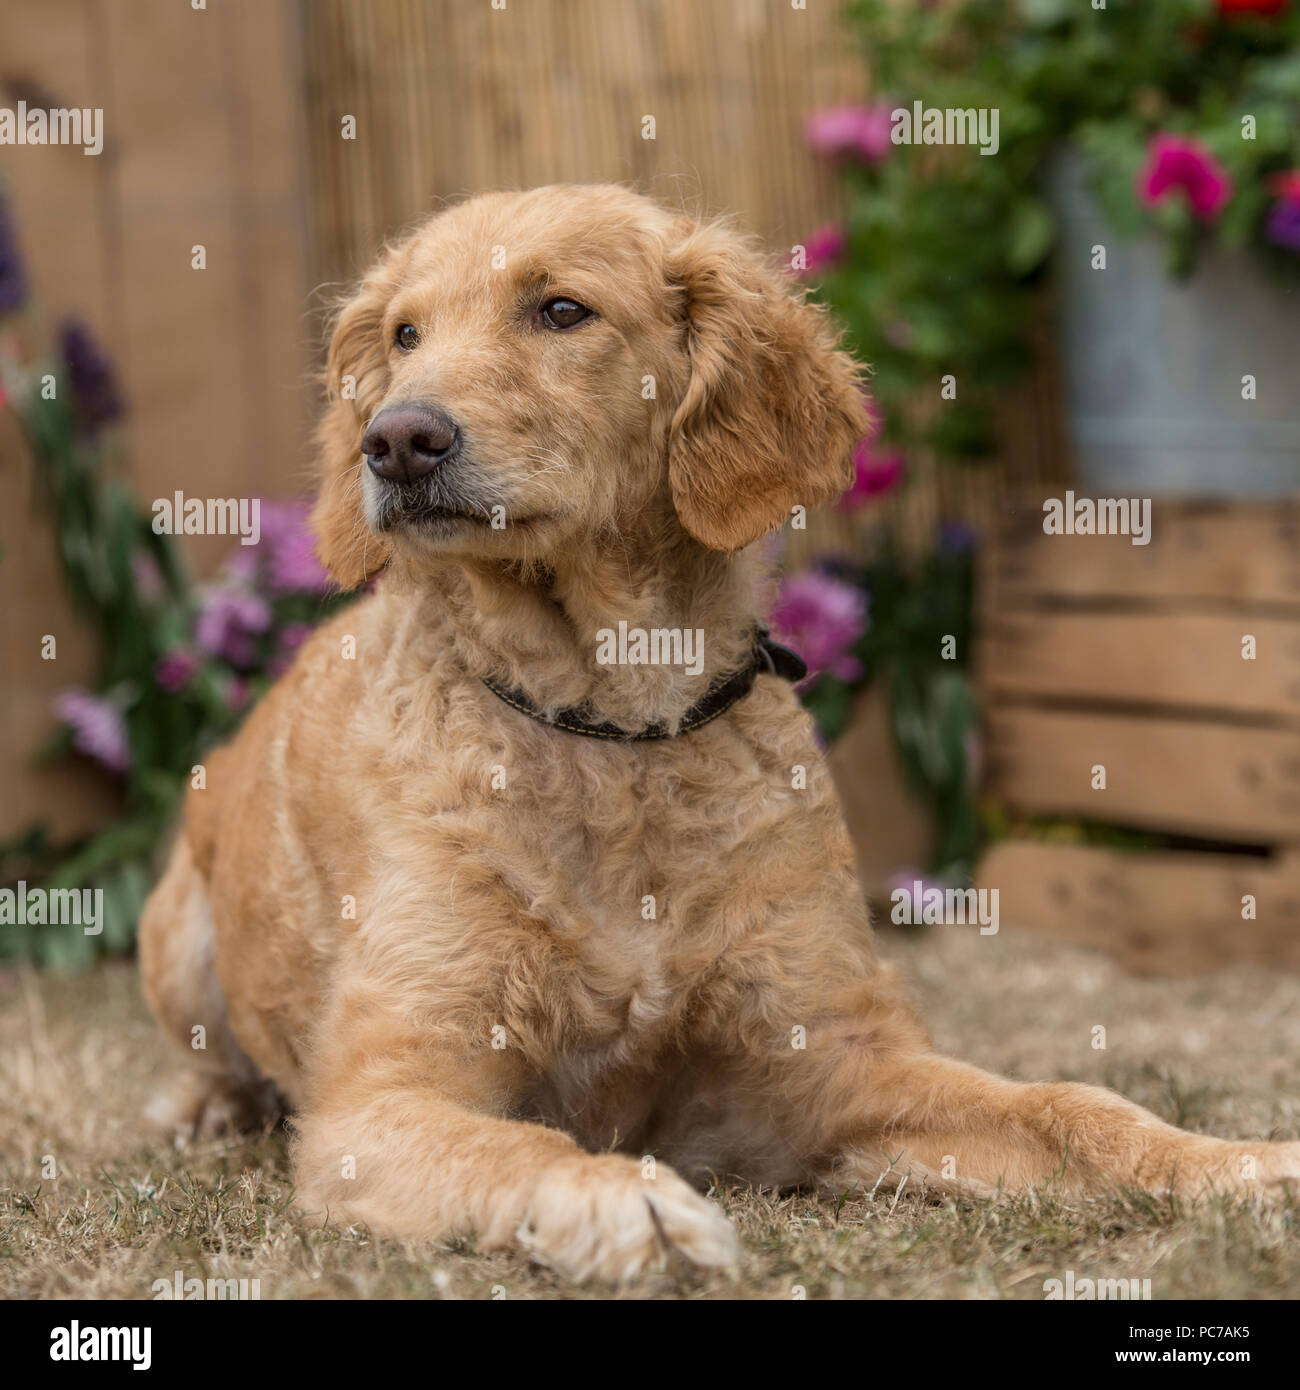 goldendoodle - Stock Image